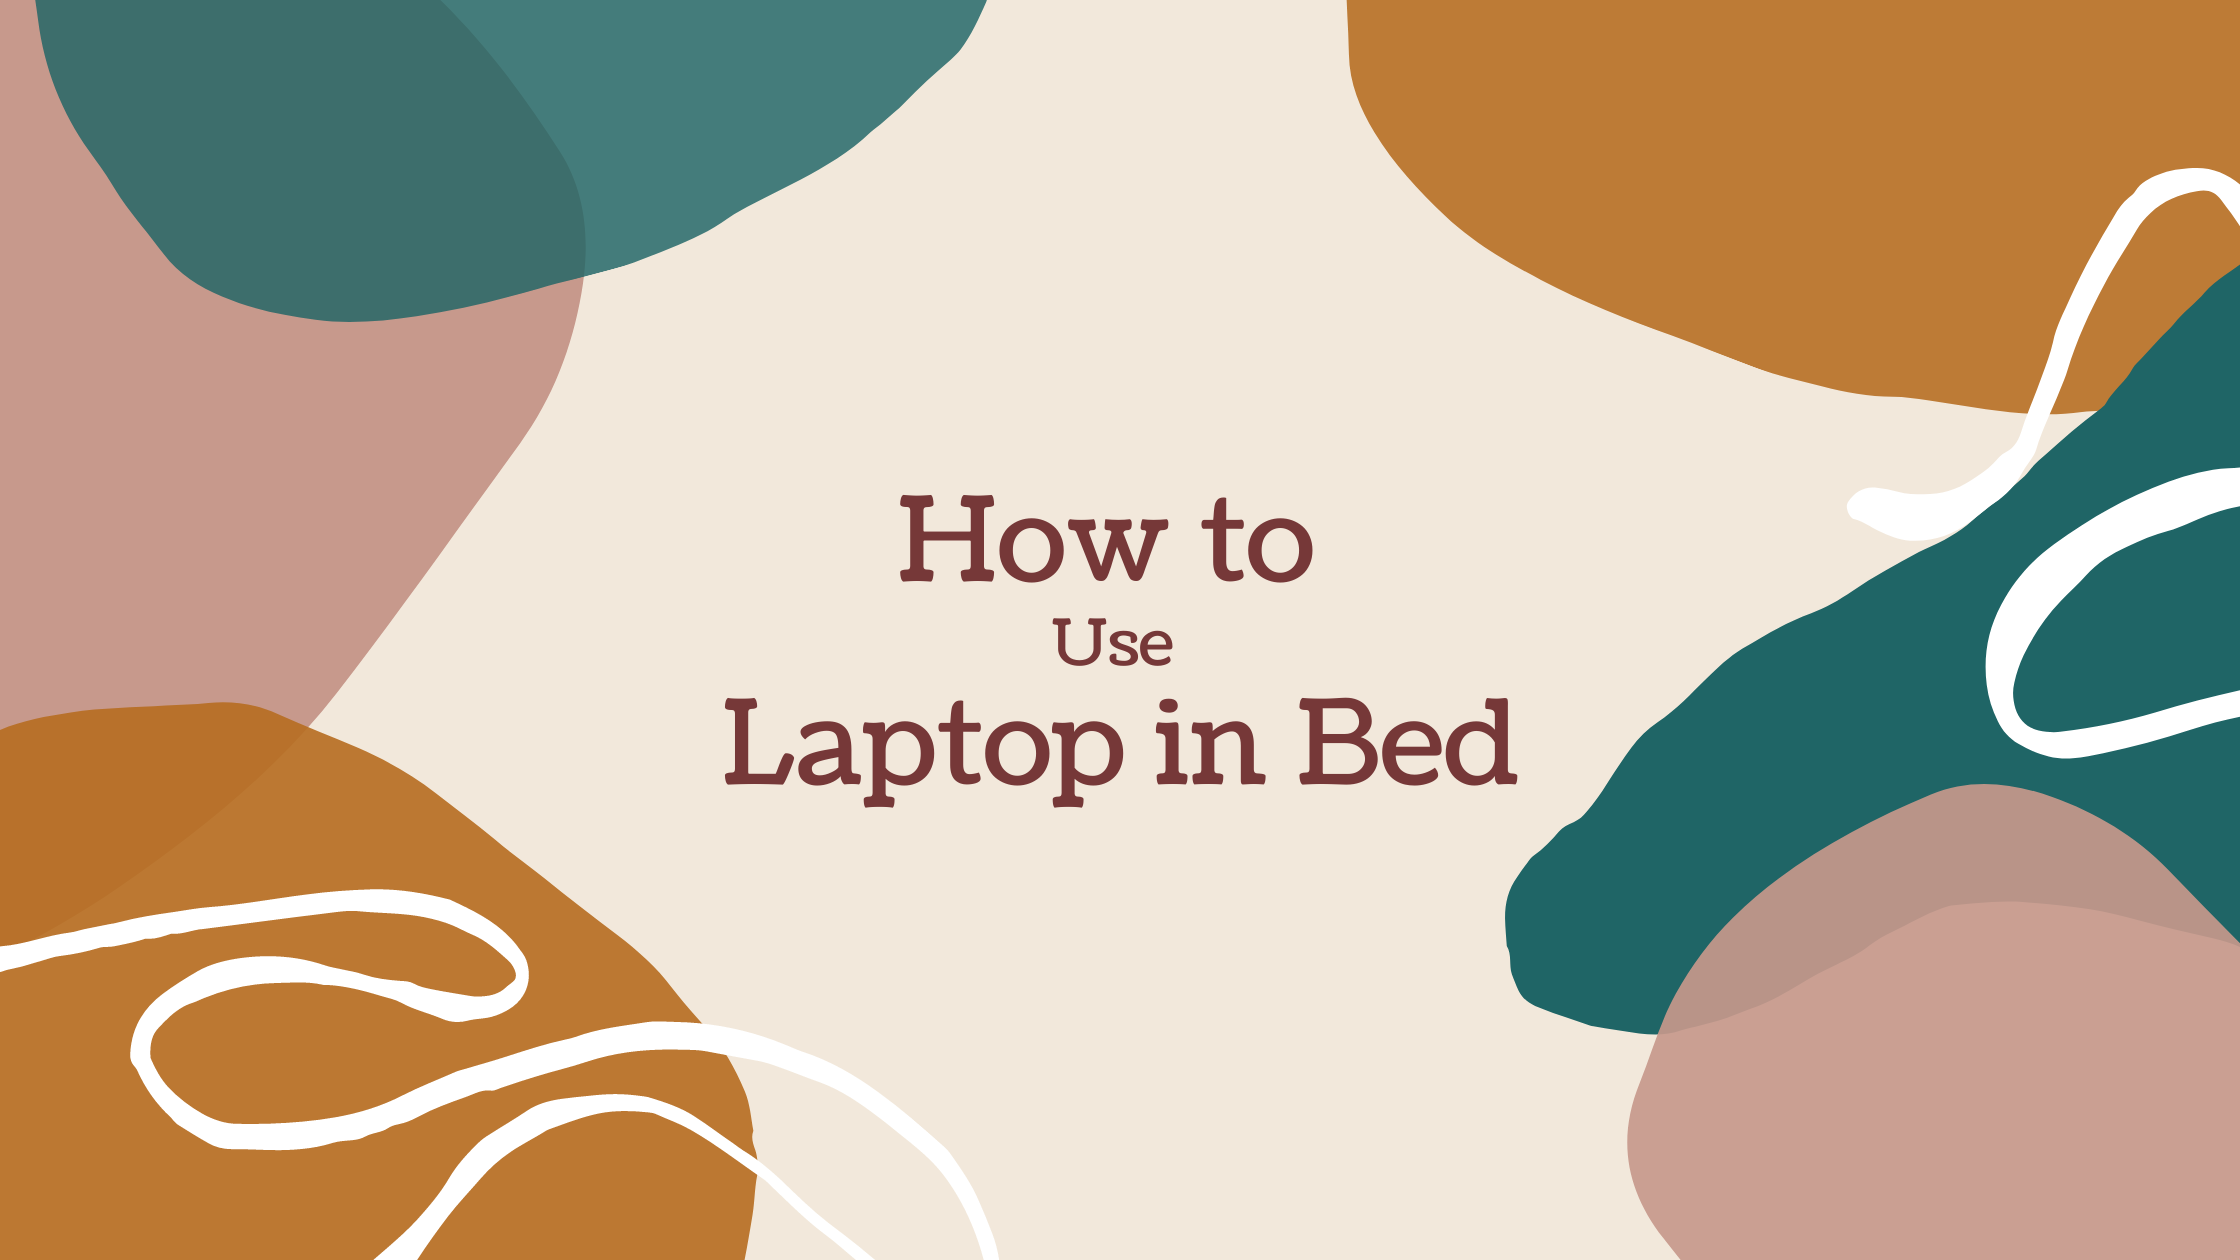 How to Use Laptop in Bed?